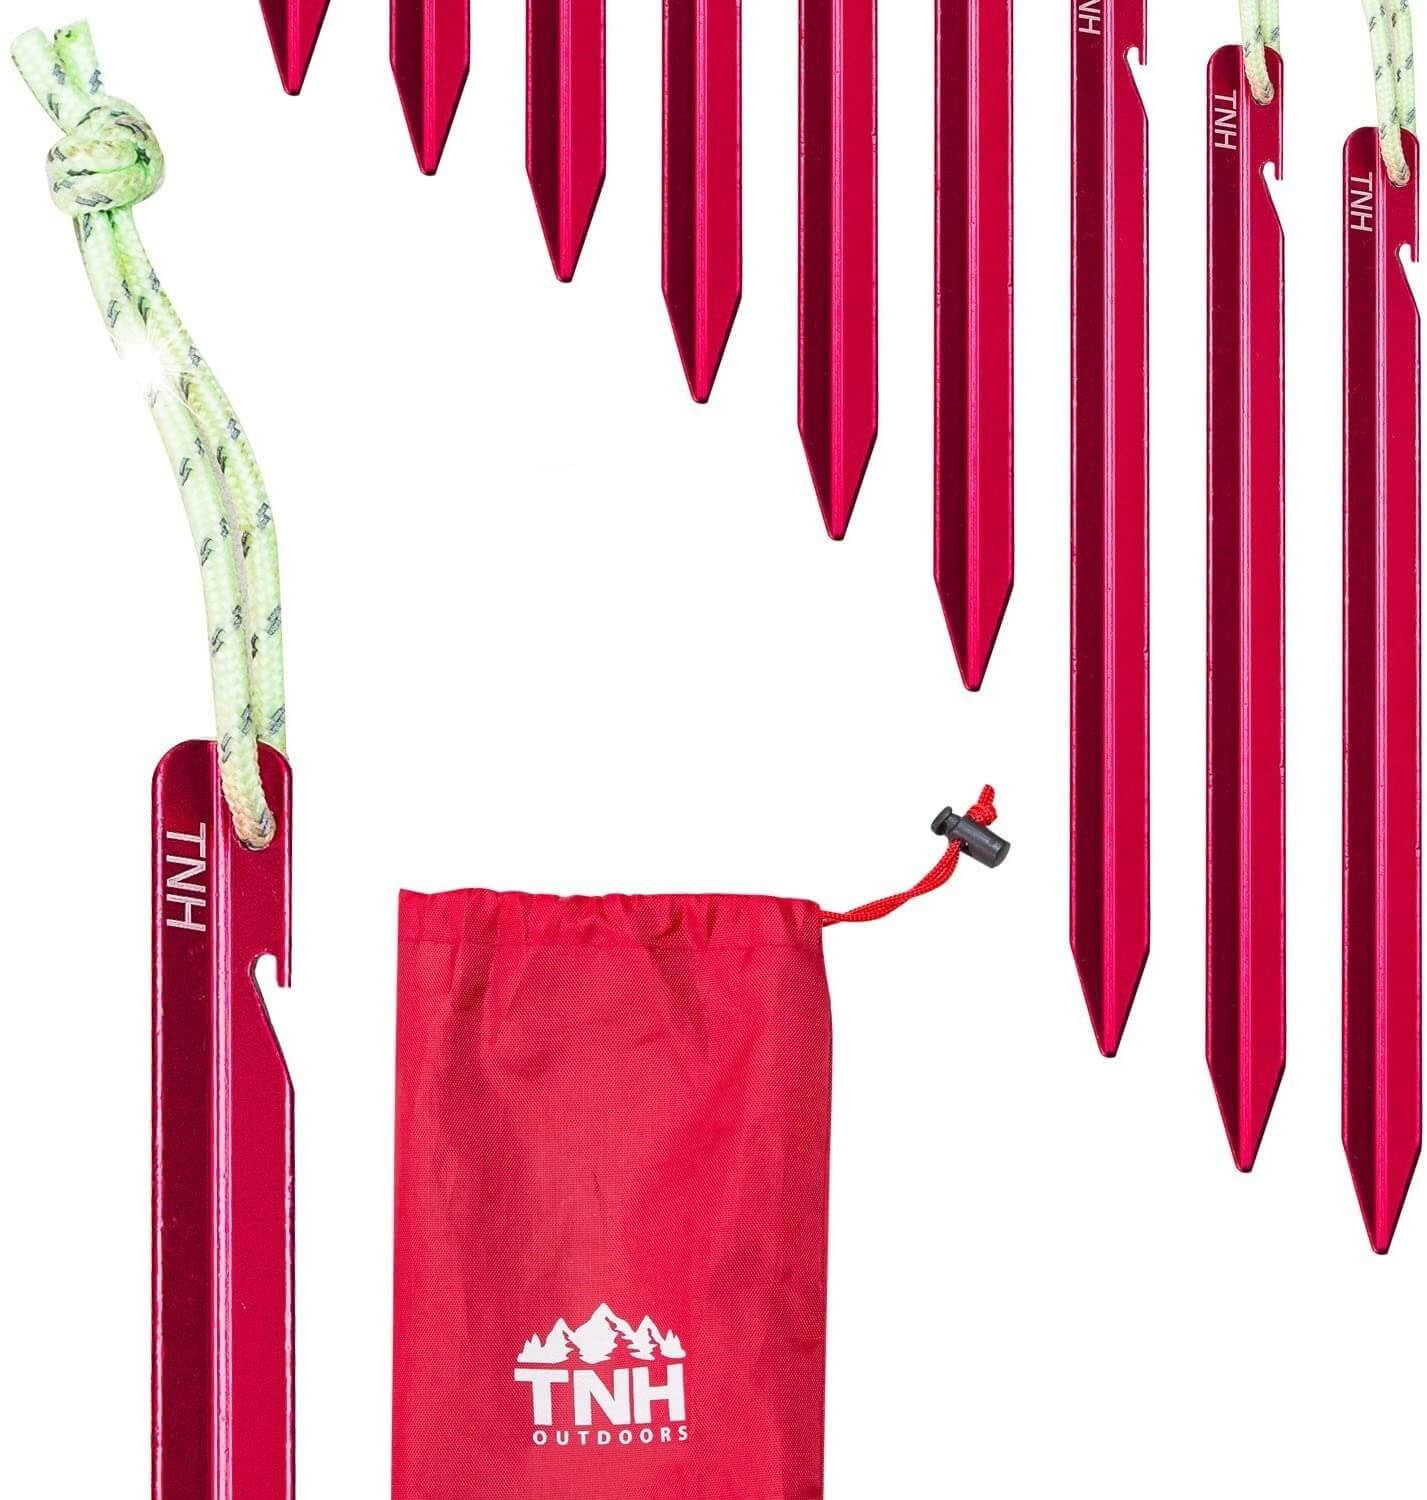 TNH Outdoors 8X Aluminum Tent Stakes